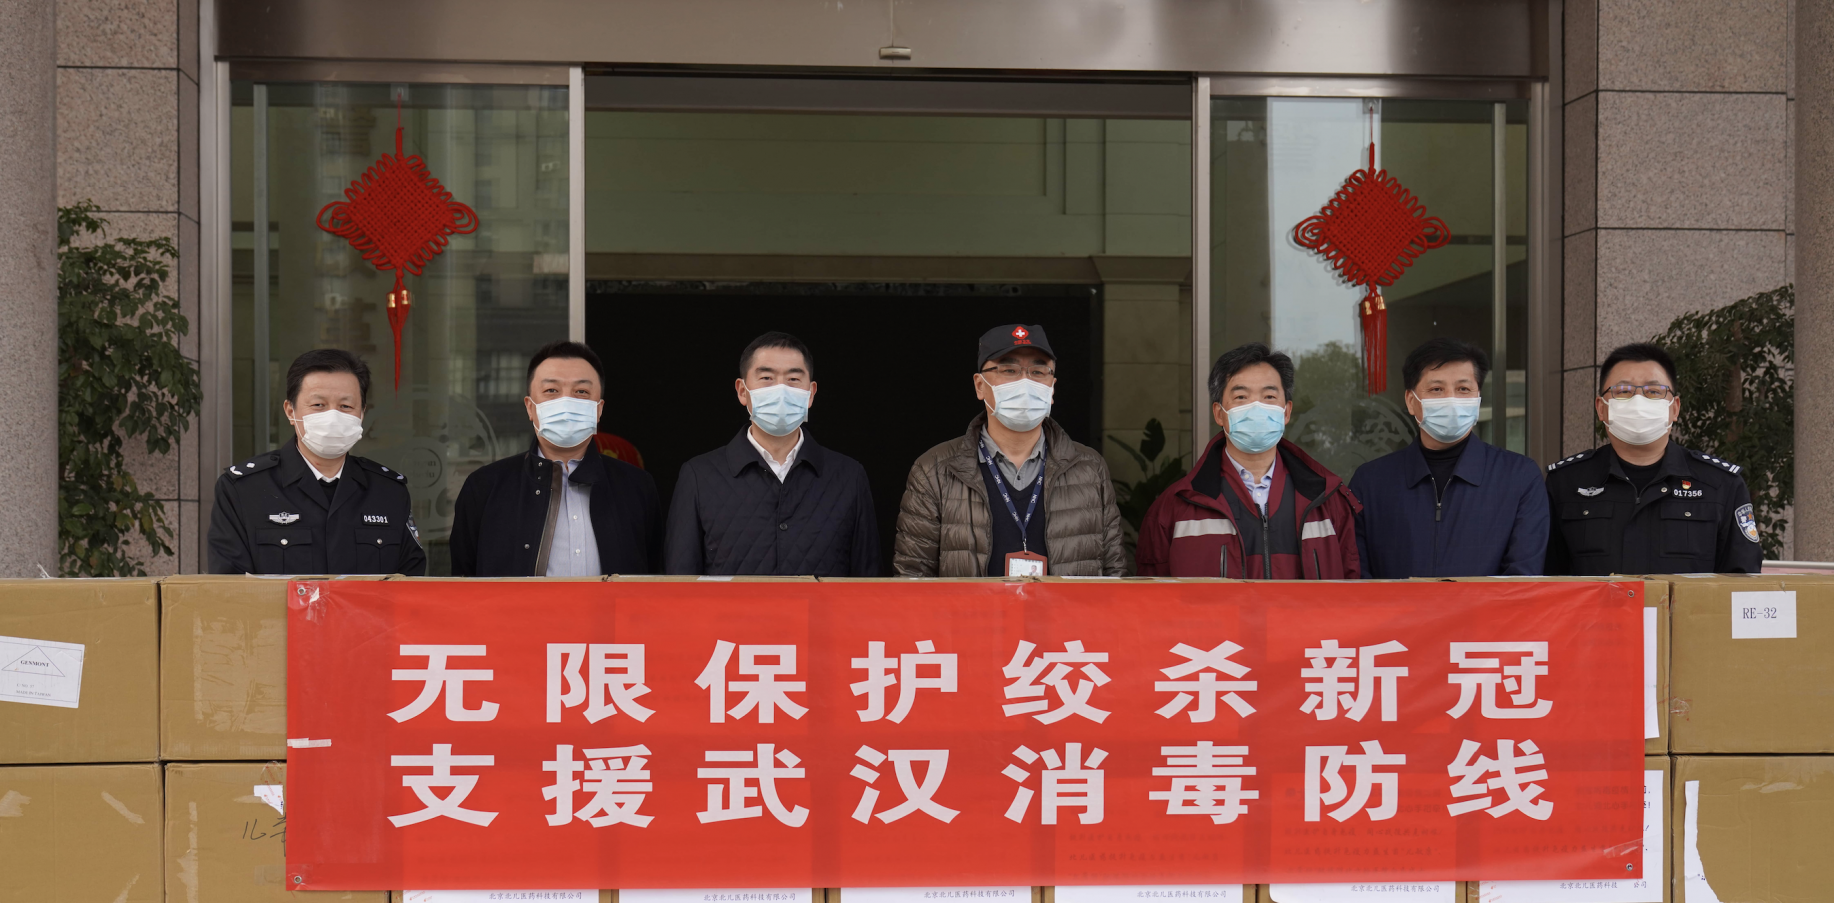 Stopping the spread of COVID-19: disinfecting public spaces in China